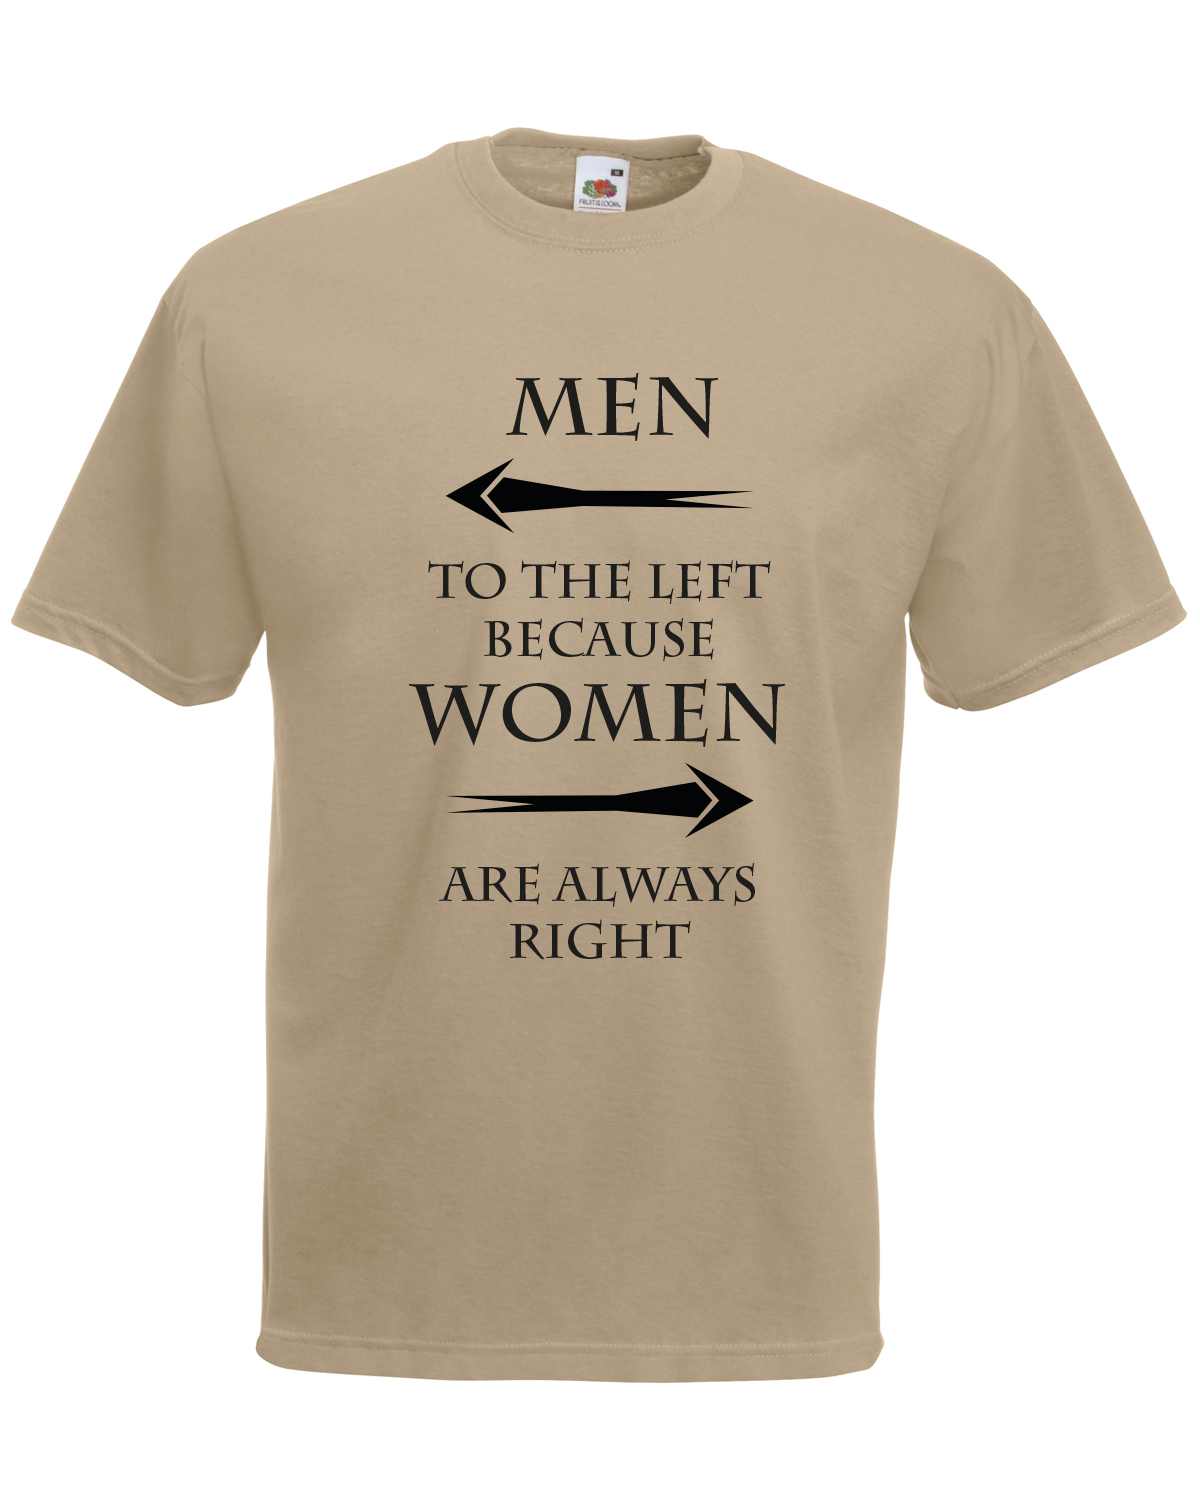 30759fc02 Men To The Left Women Right Graphic Design Quality t-shirt tee mens unisex